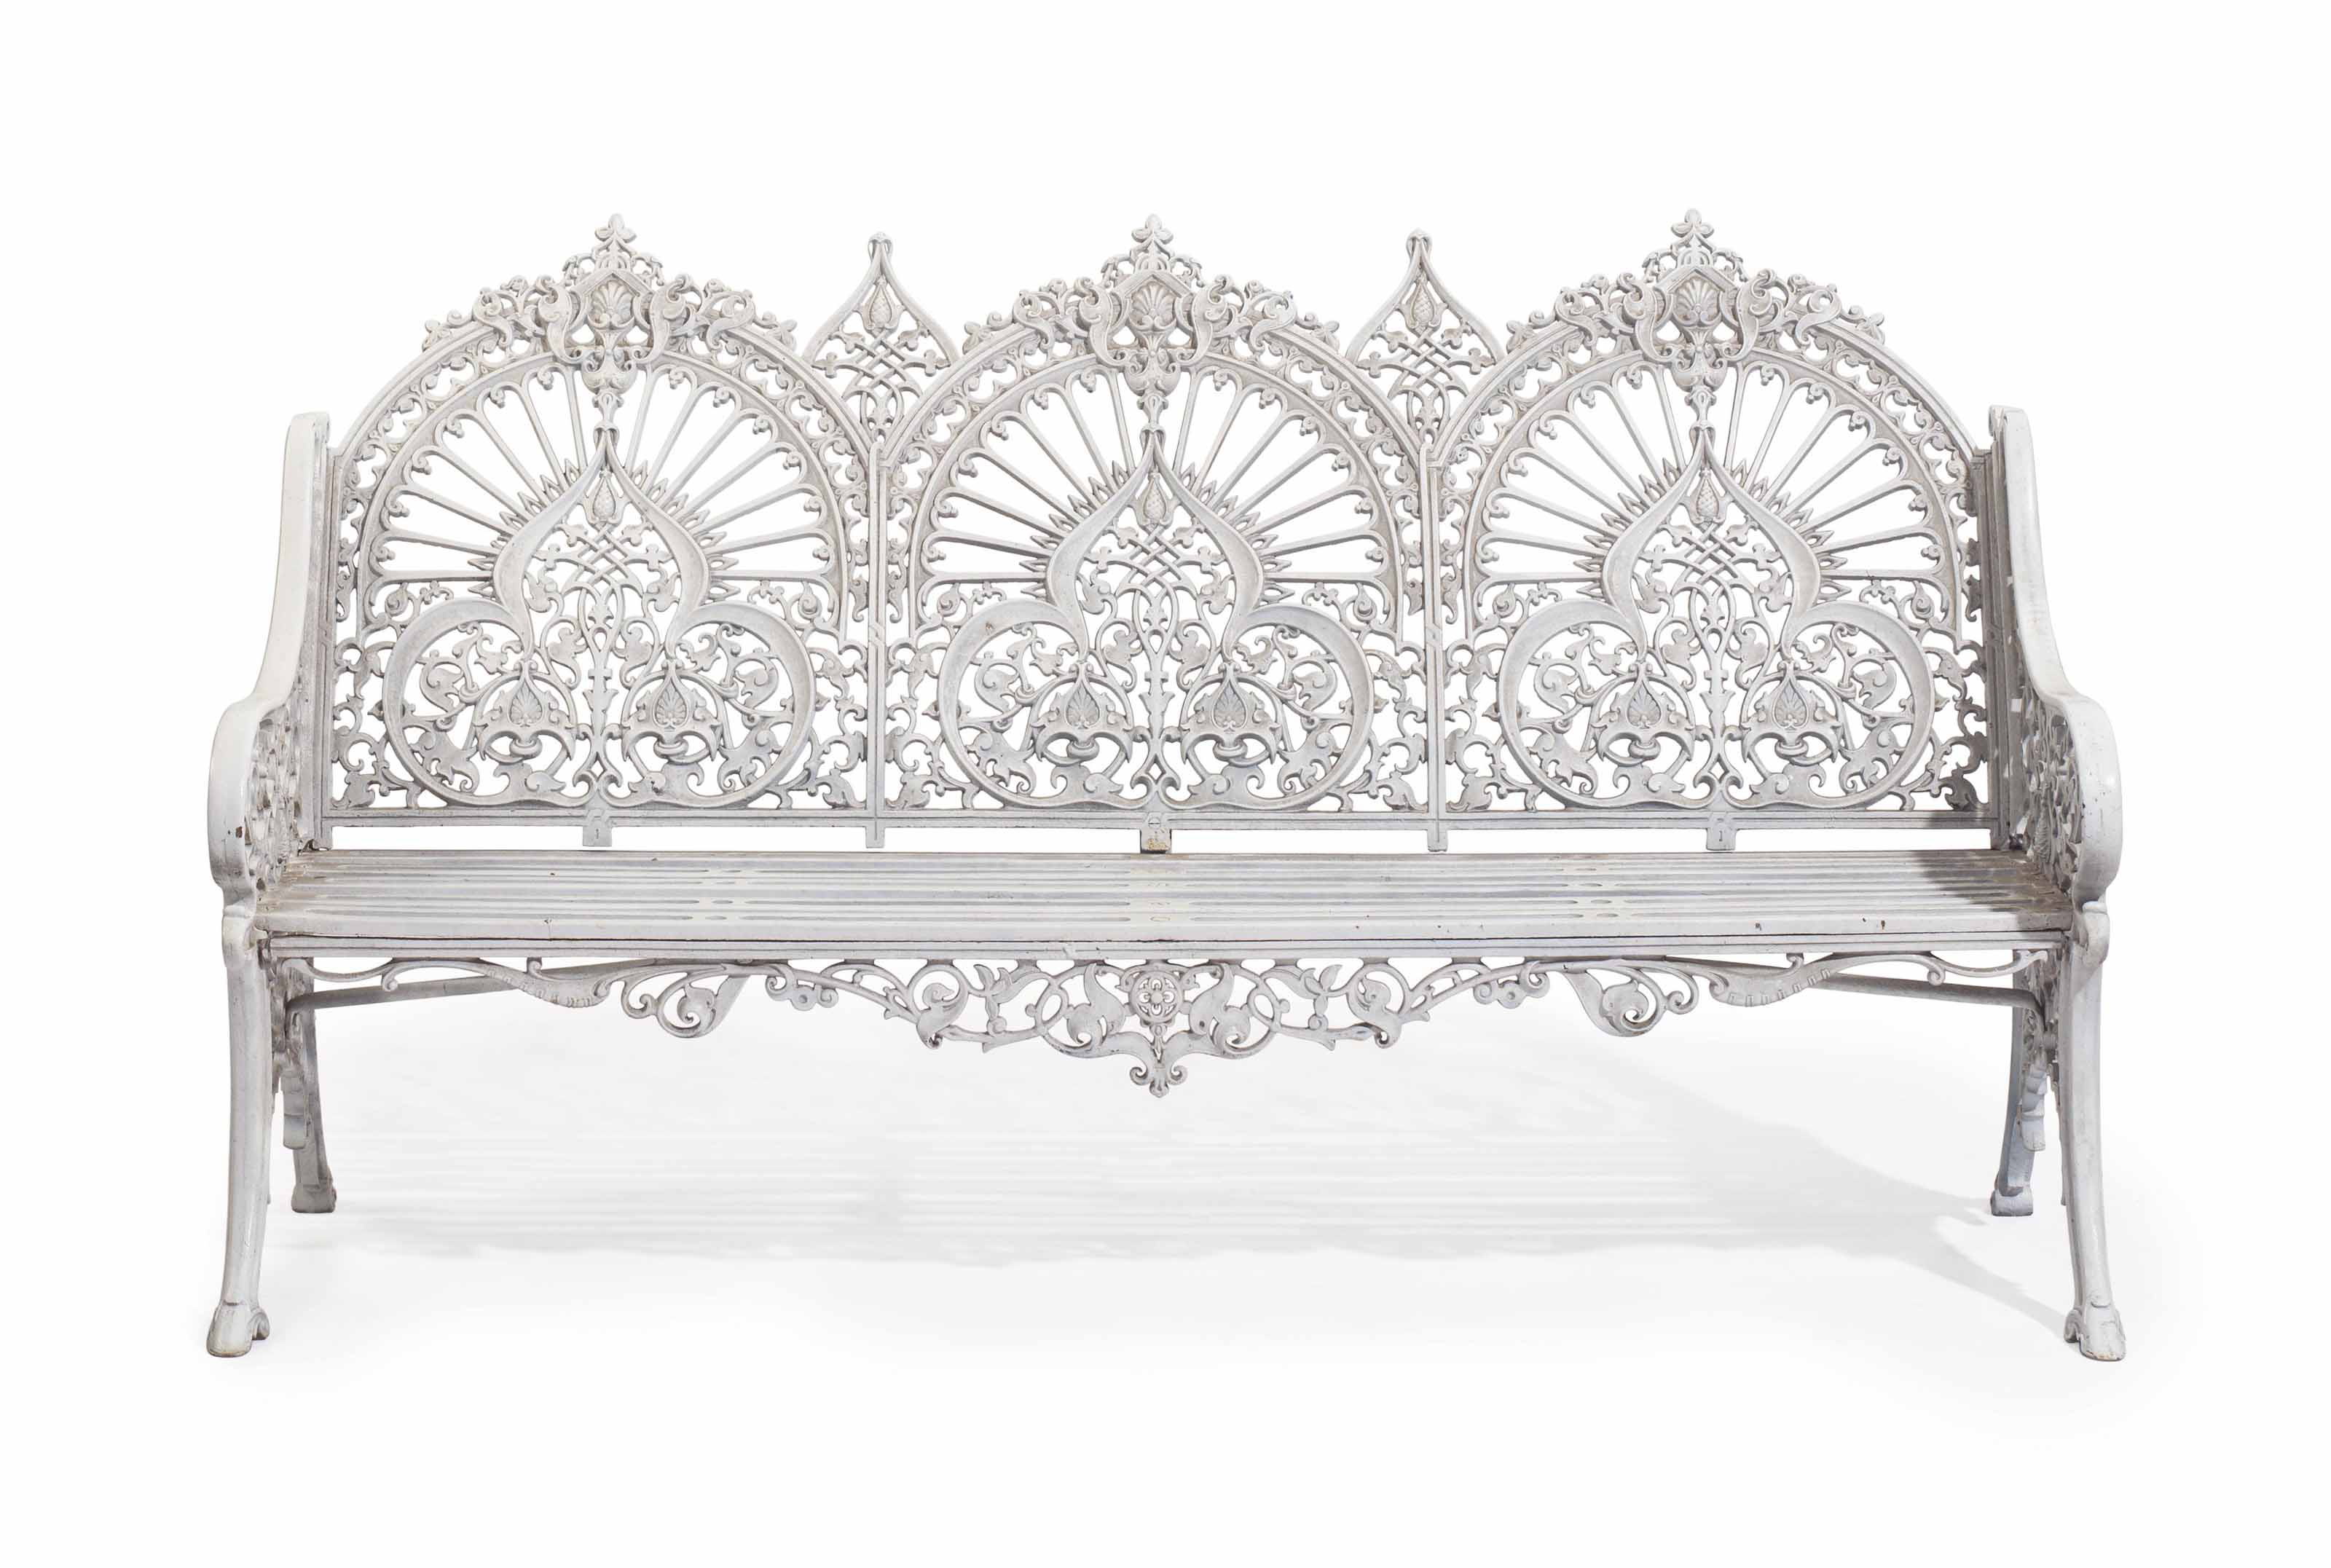 A VICTORIAN WHITE PAINTED CAST IRON GARDEN BENCH